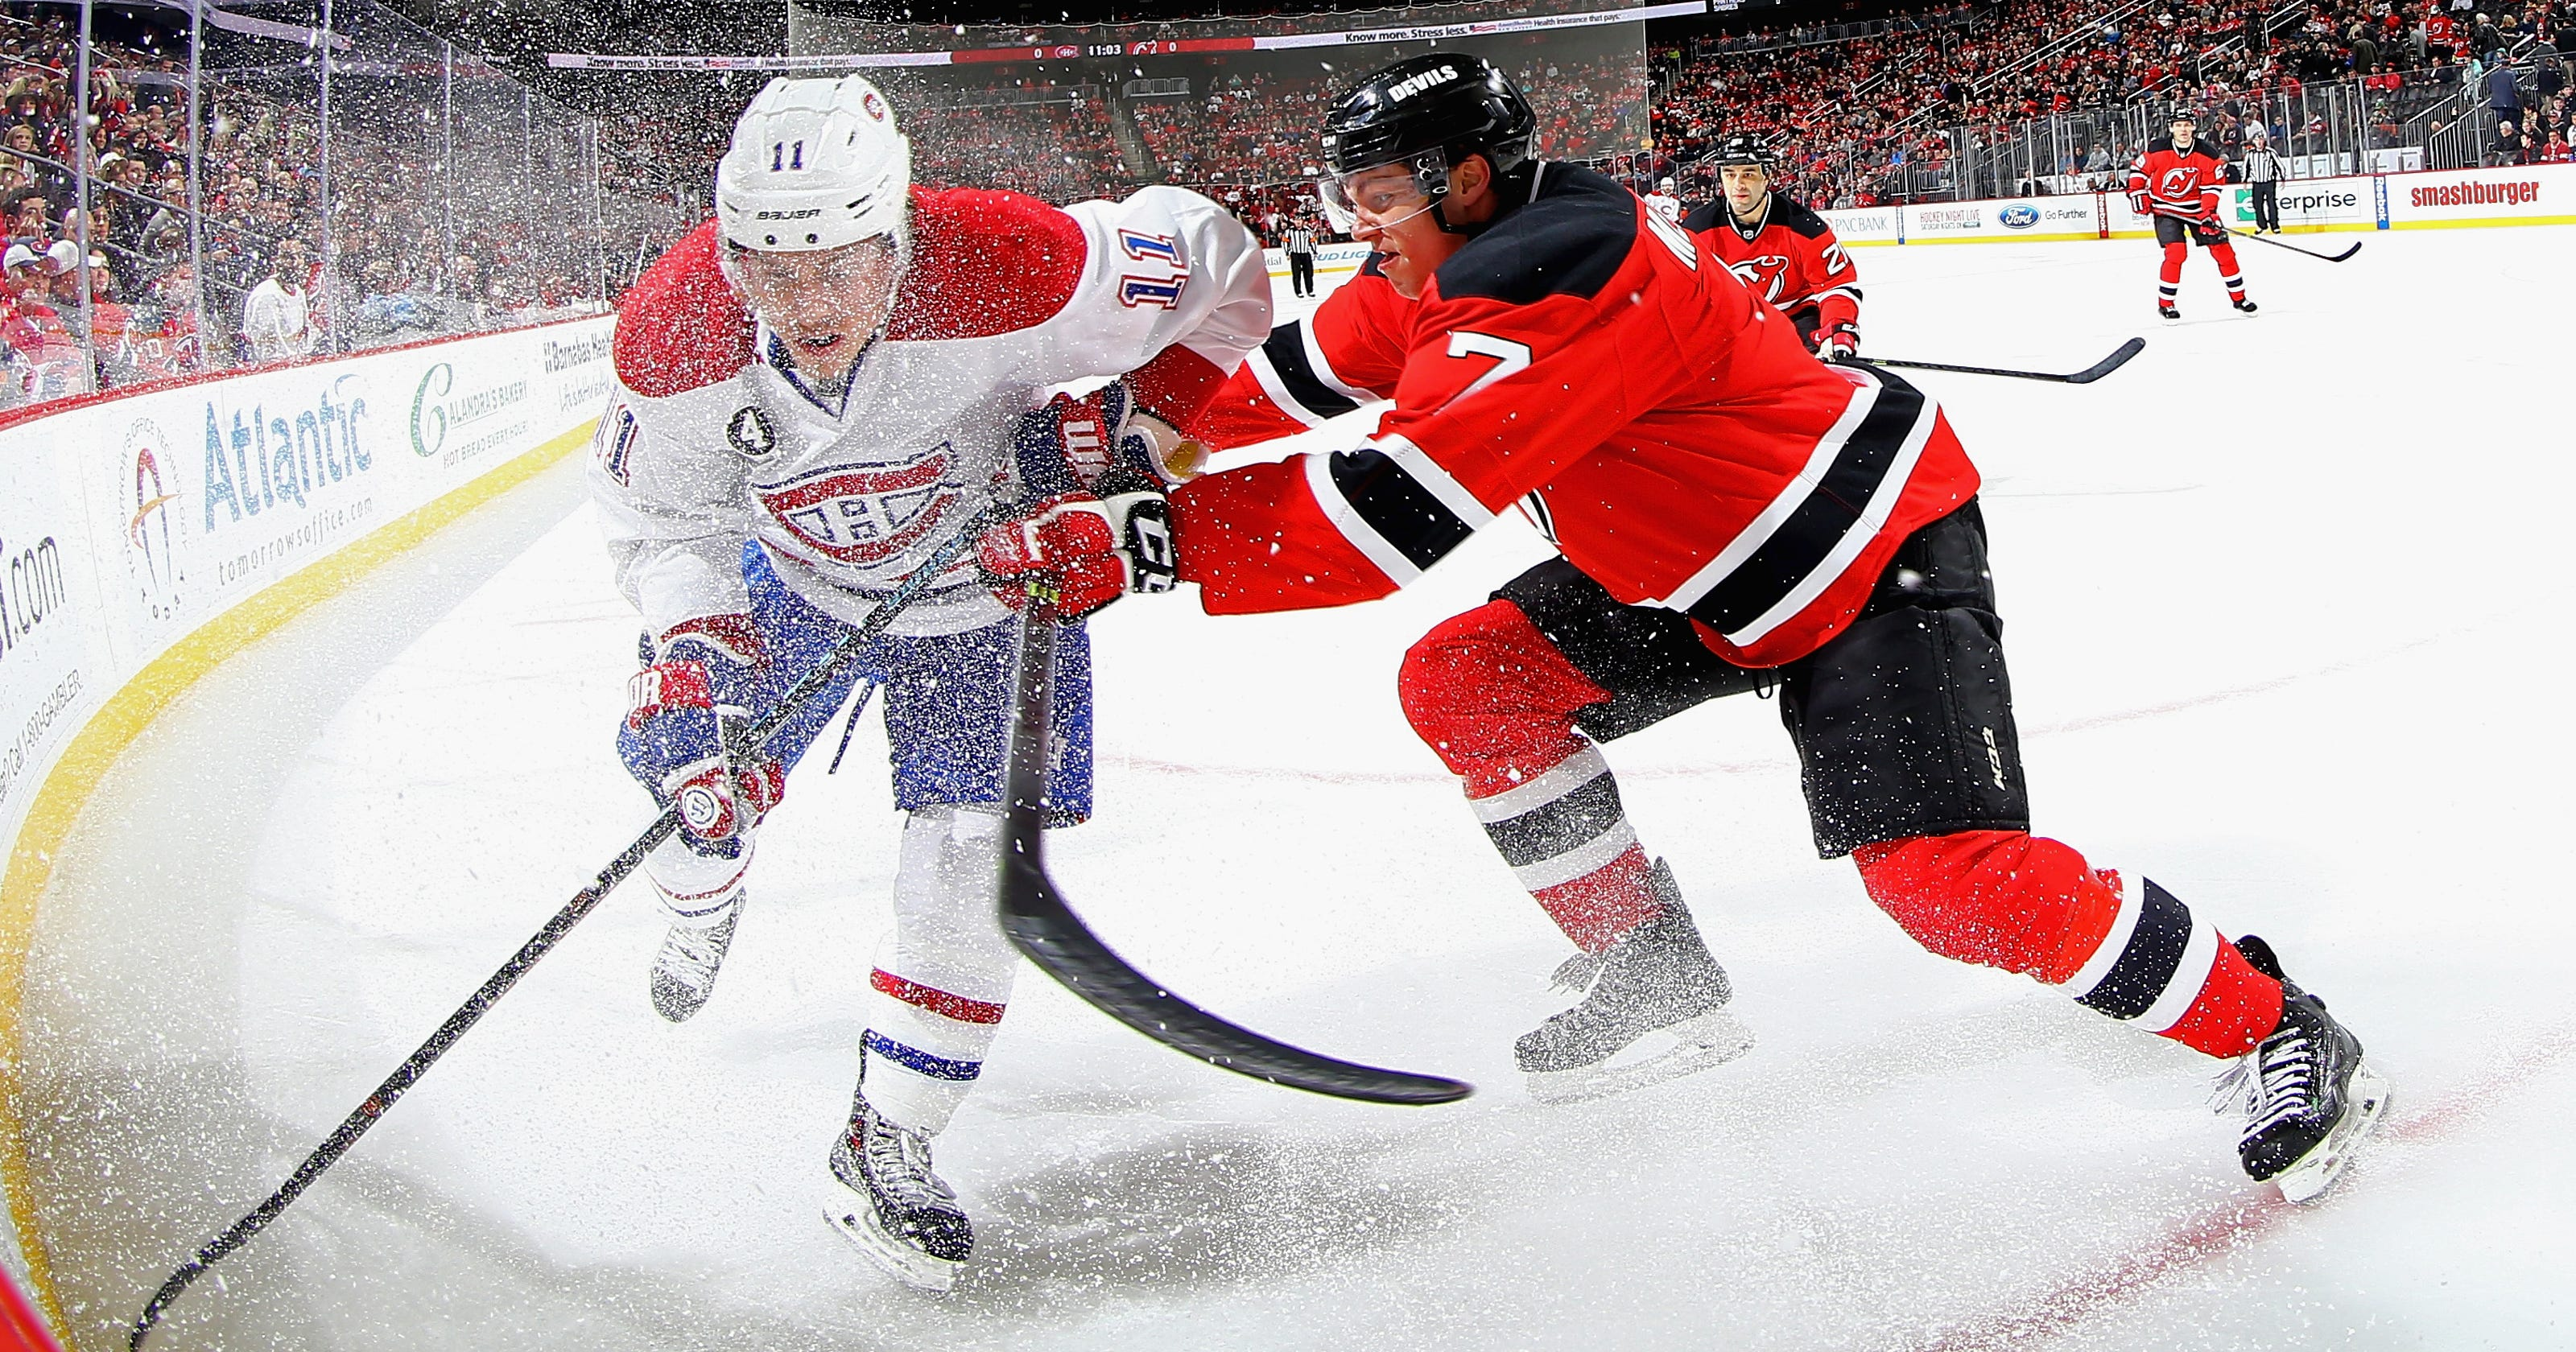 6197f0deba4 New Jersey Devils lose to Montreal Canadiens